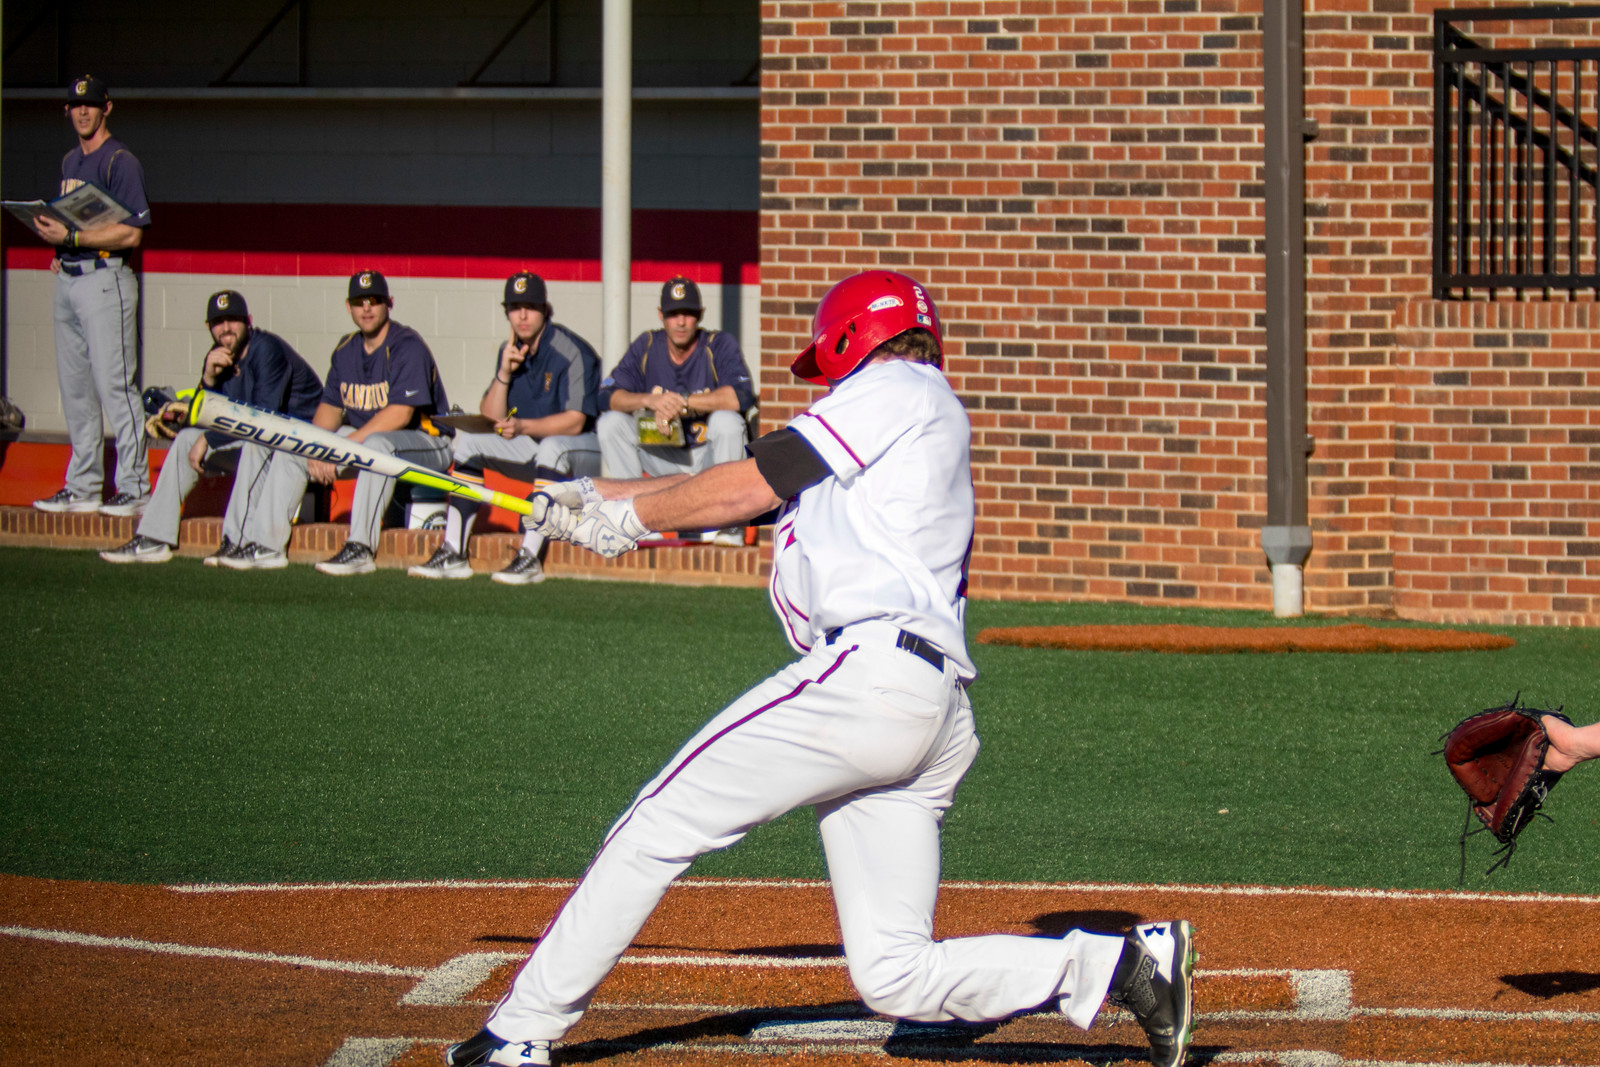 GWU Men's Baseball vs. Canisius Feb 2017